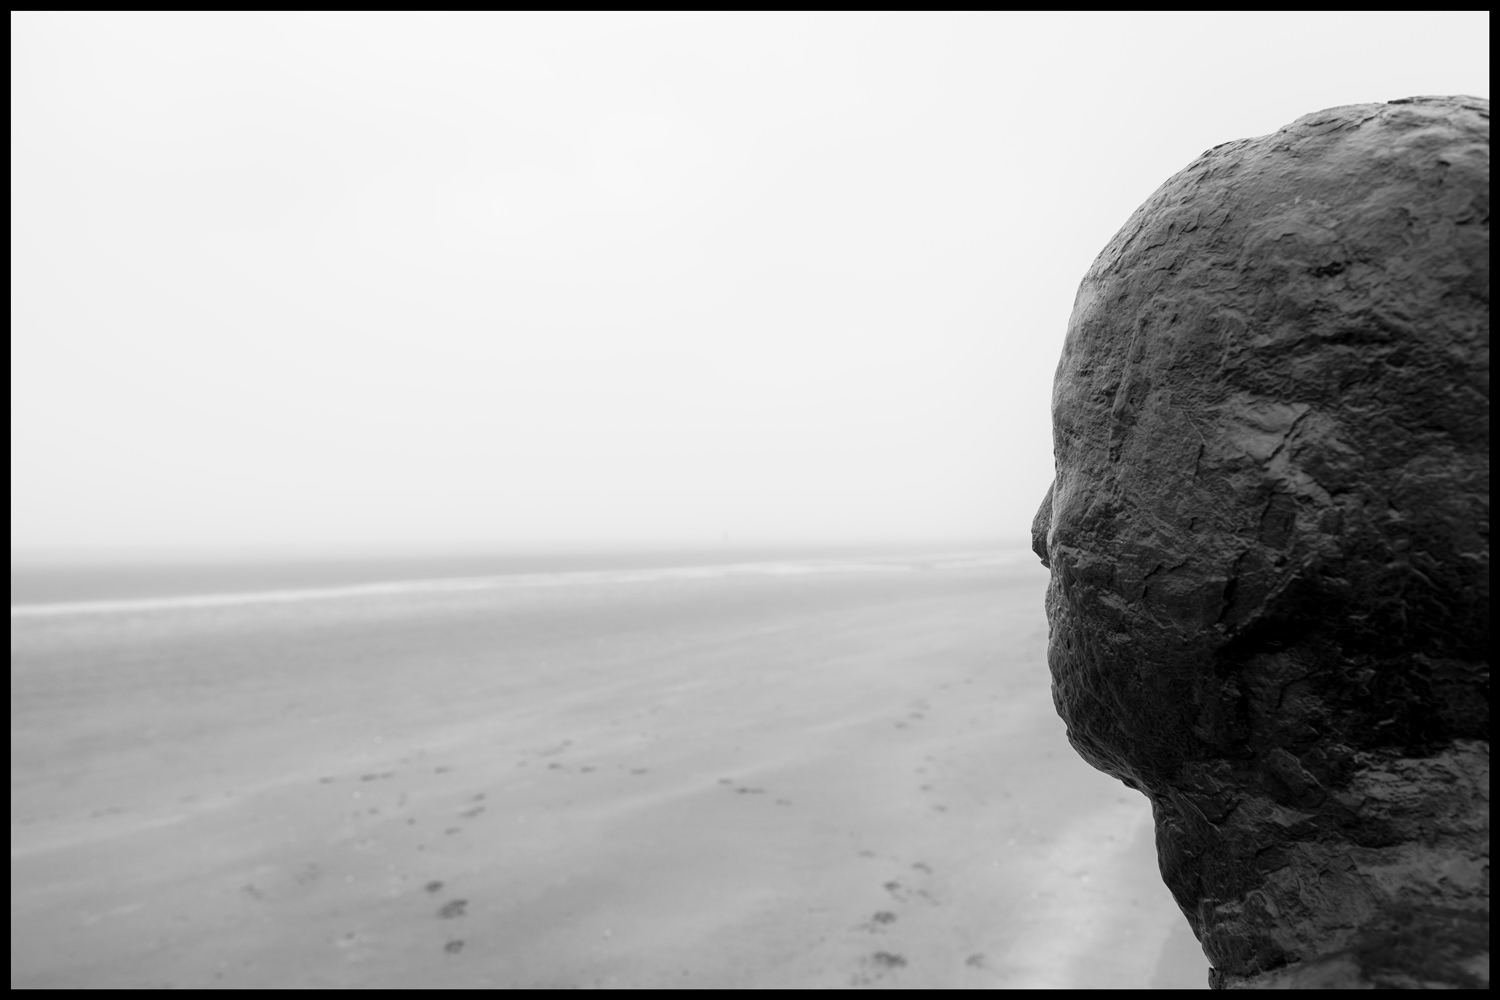 Looking down the foggy beach with the head of one of the iron men in the foreground. The camera is looking three-quarters on to the head from behind it